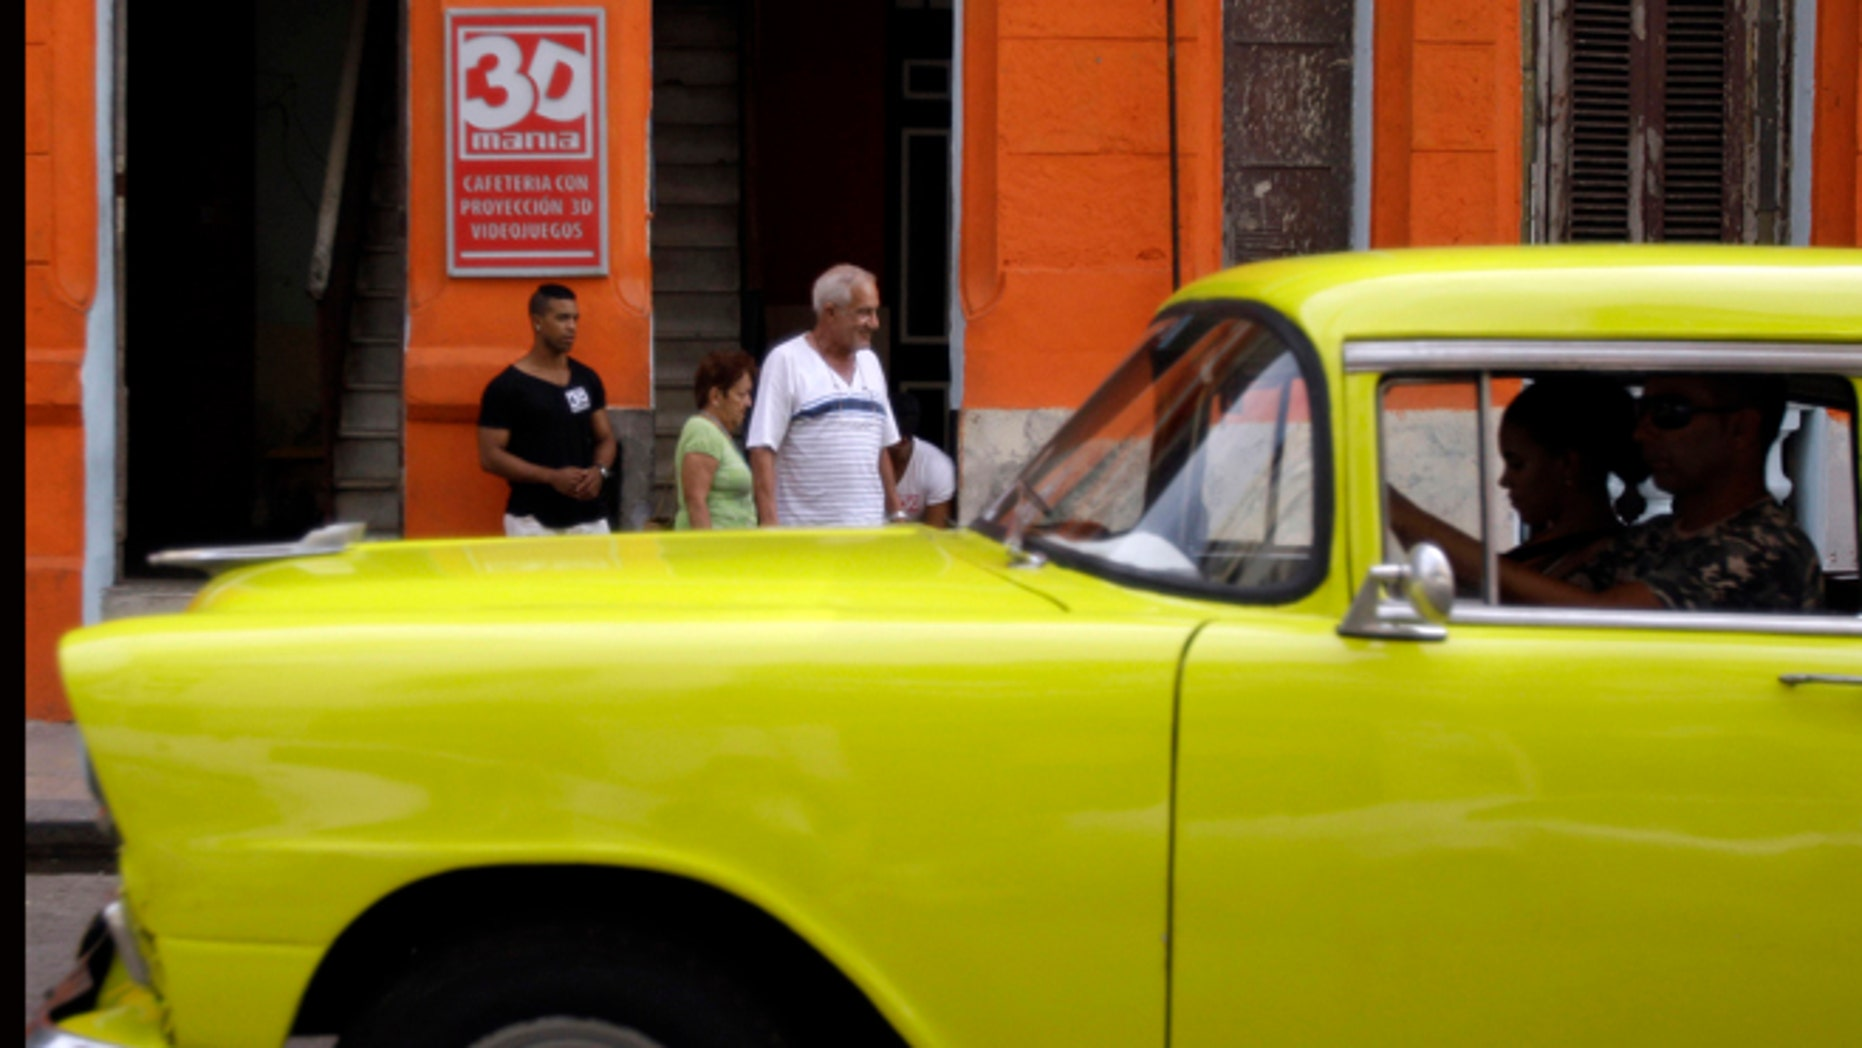 "A classic American car that is used as a taxi passes by the entrance of a private movie theater called ""3D Mania"" in Havana, Cuba, Monday, Oct. 28, 2013. Cuban entrepreneurs have quietly opened dozens of backroom video salons over the last year, seizing on ambiguities in licensing laws to transform cafes and childrenâs entertainment parlors into a new breed of private business unforeseen by recent official openings in the communist economy. (AP Photo/Franklin Reyes)"